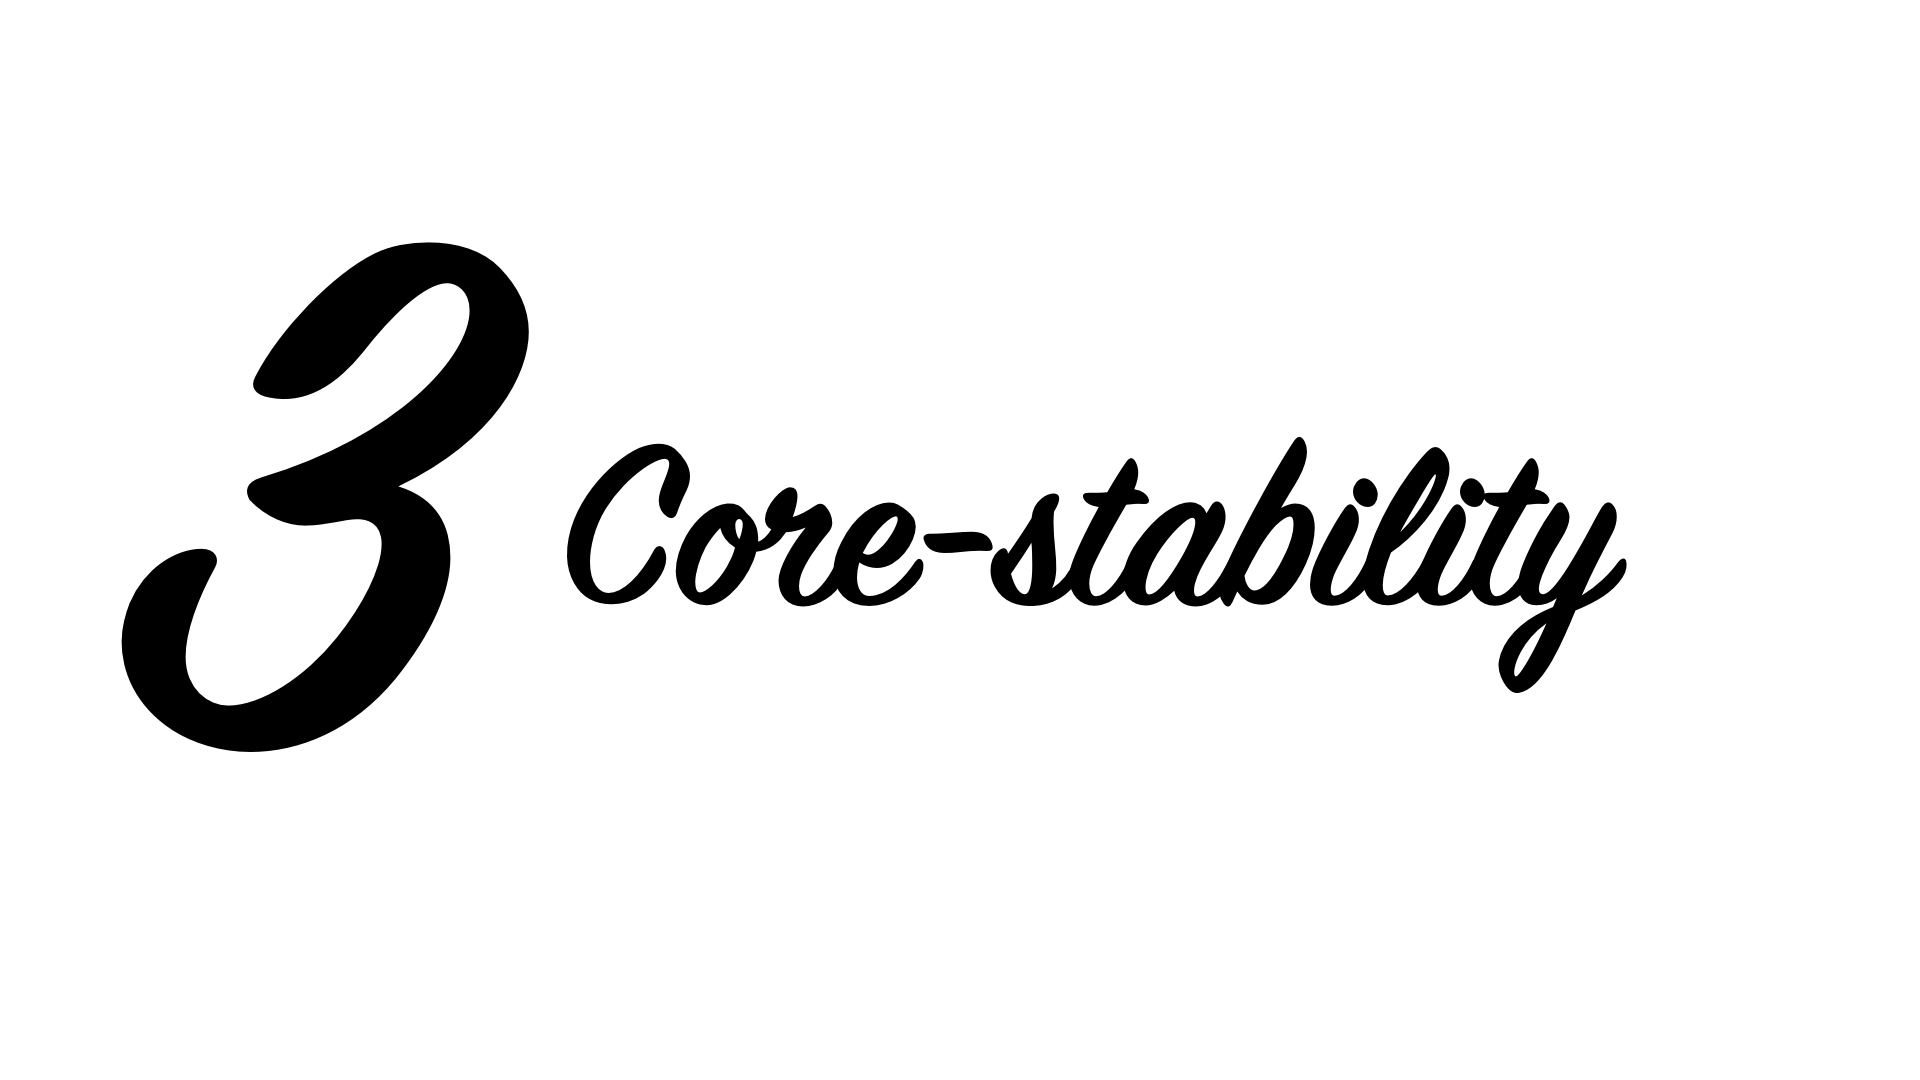 Core-stability Golf Stabiliteit Training Fitness Mol